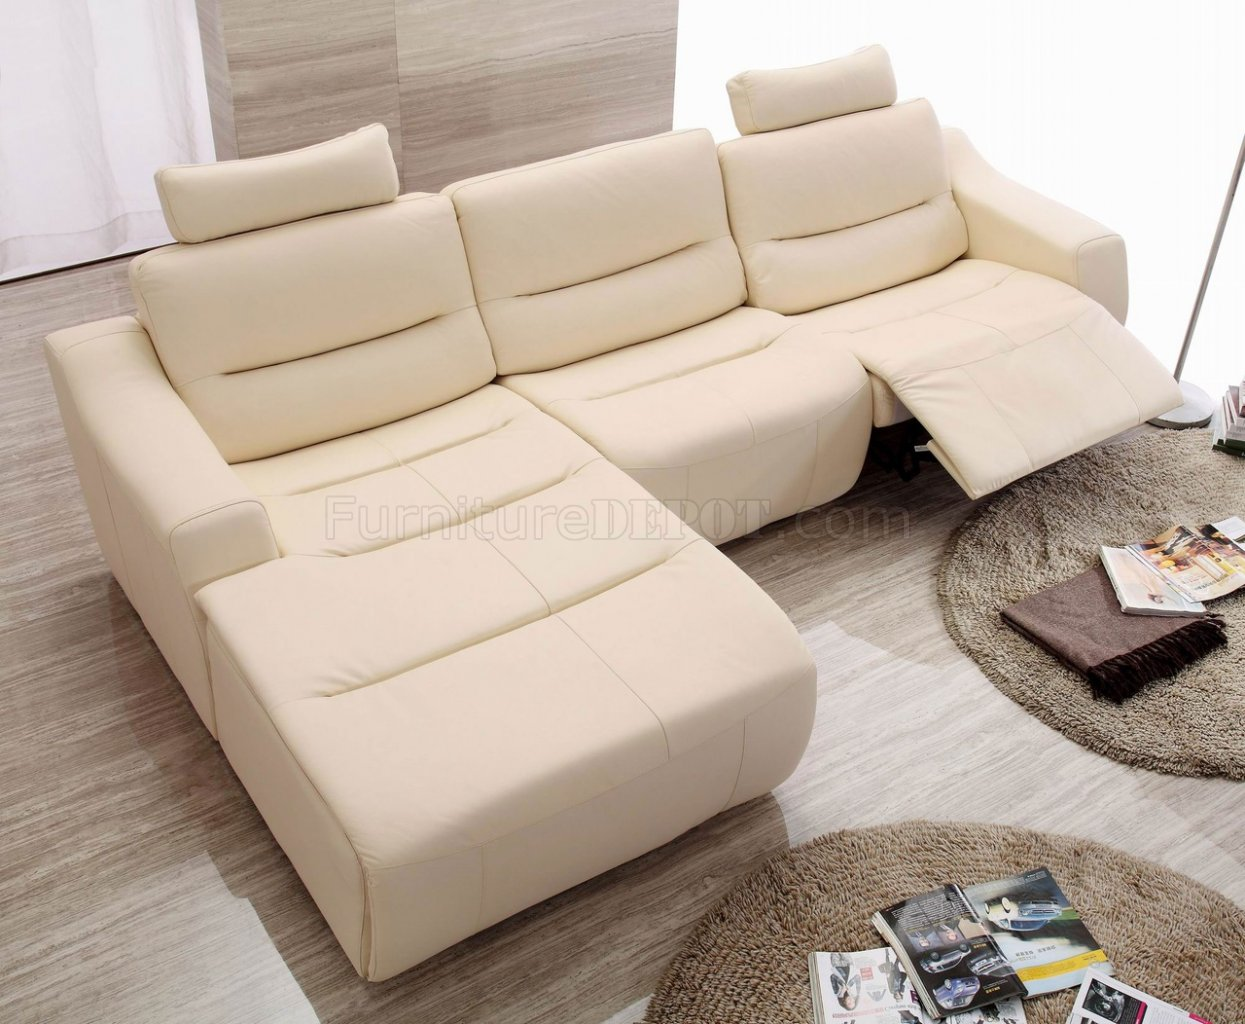 white reclining sofa and loveseat how to remove curry stain from leather off 2143 modern sectional by esf